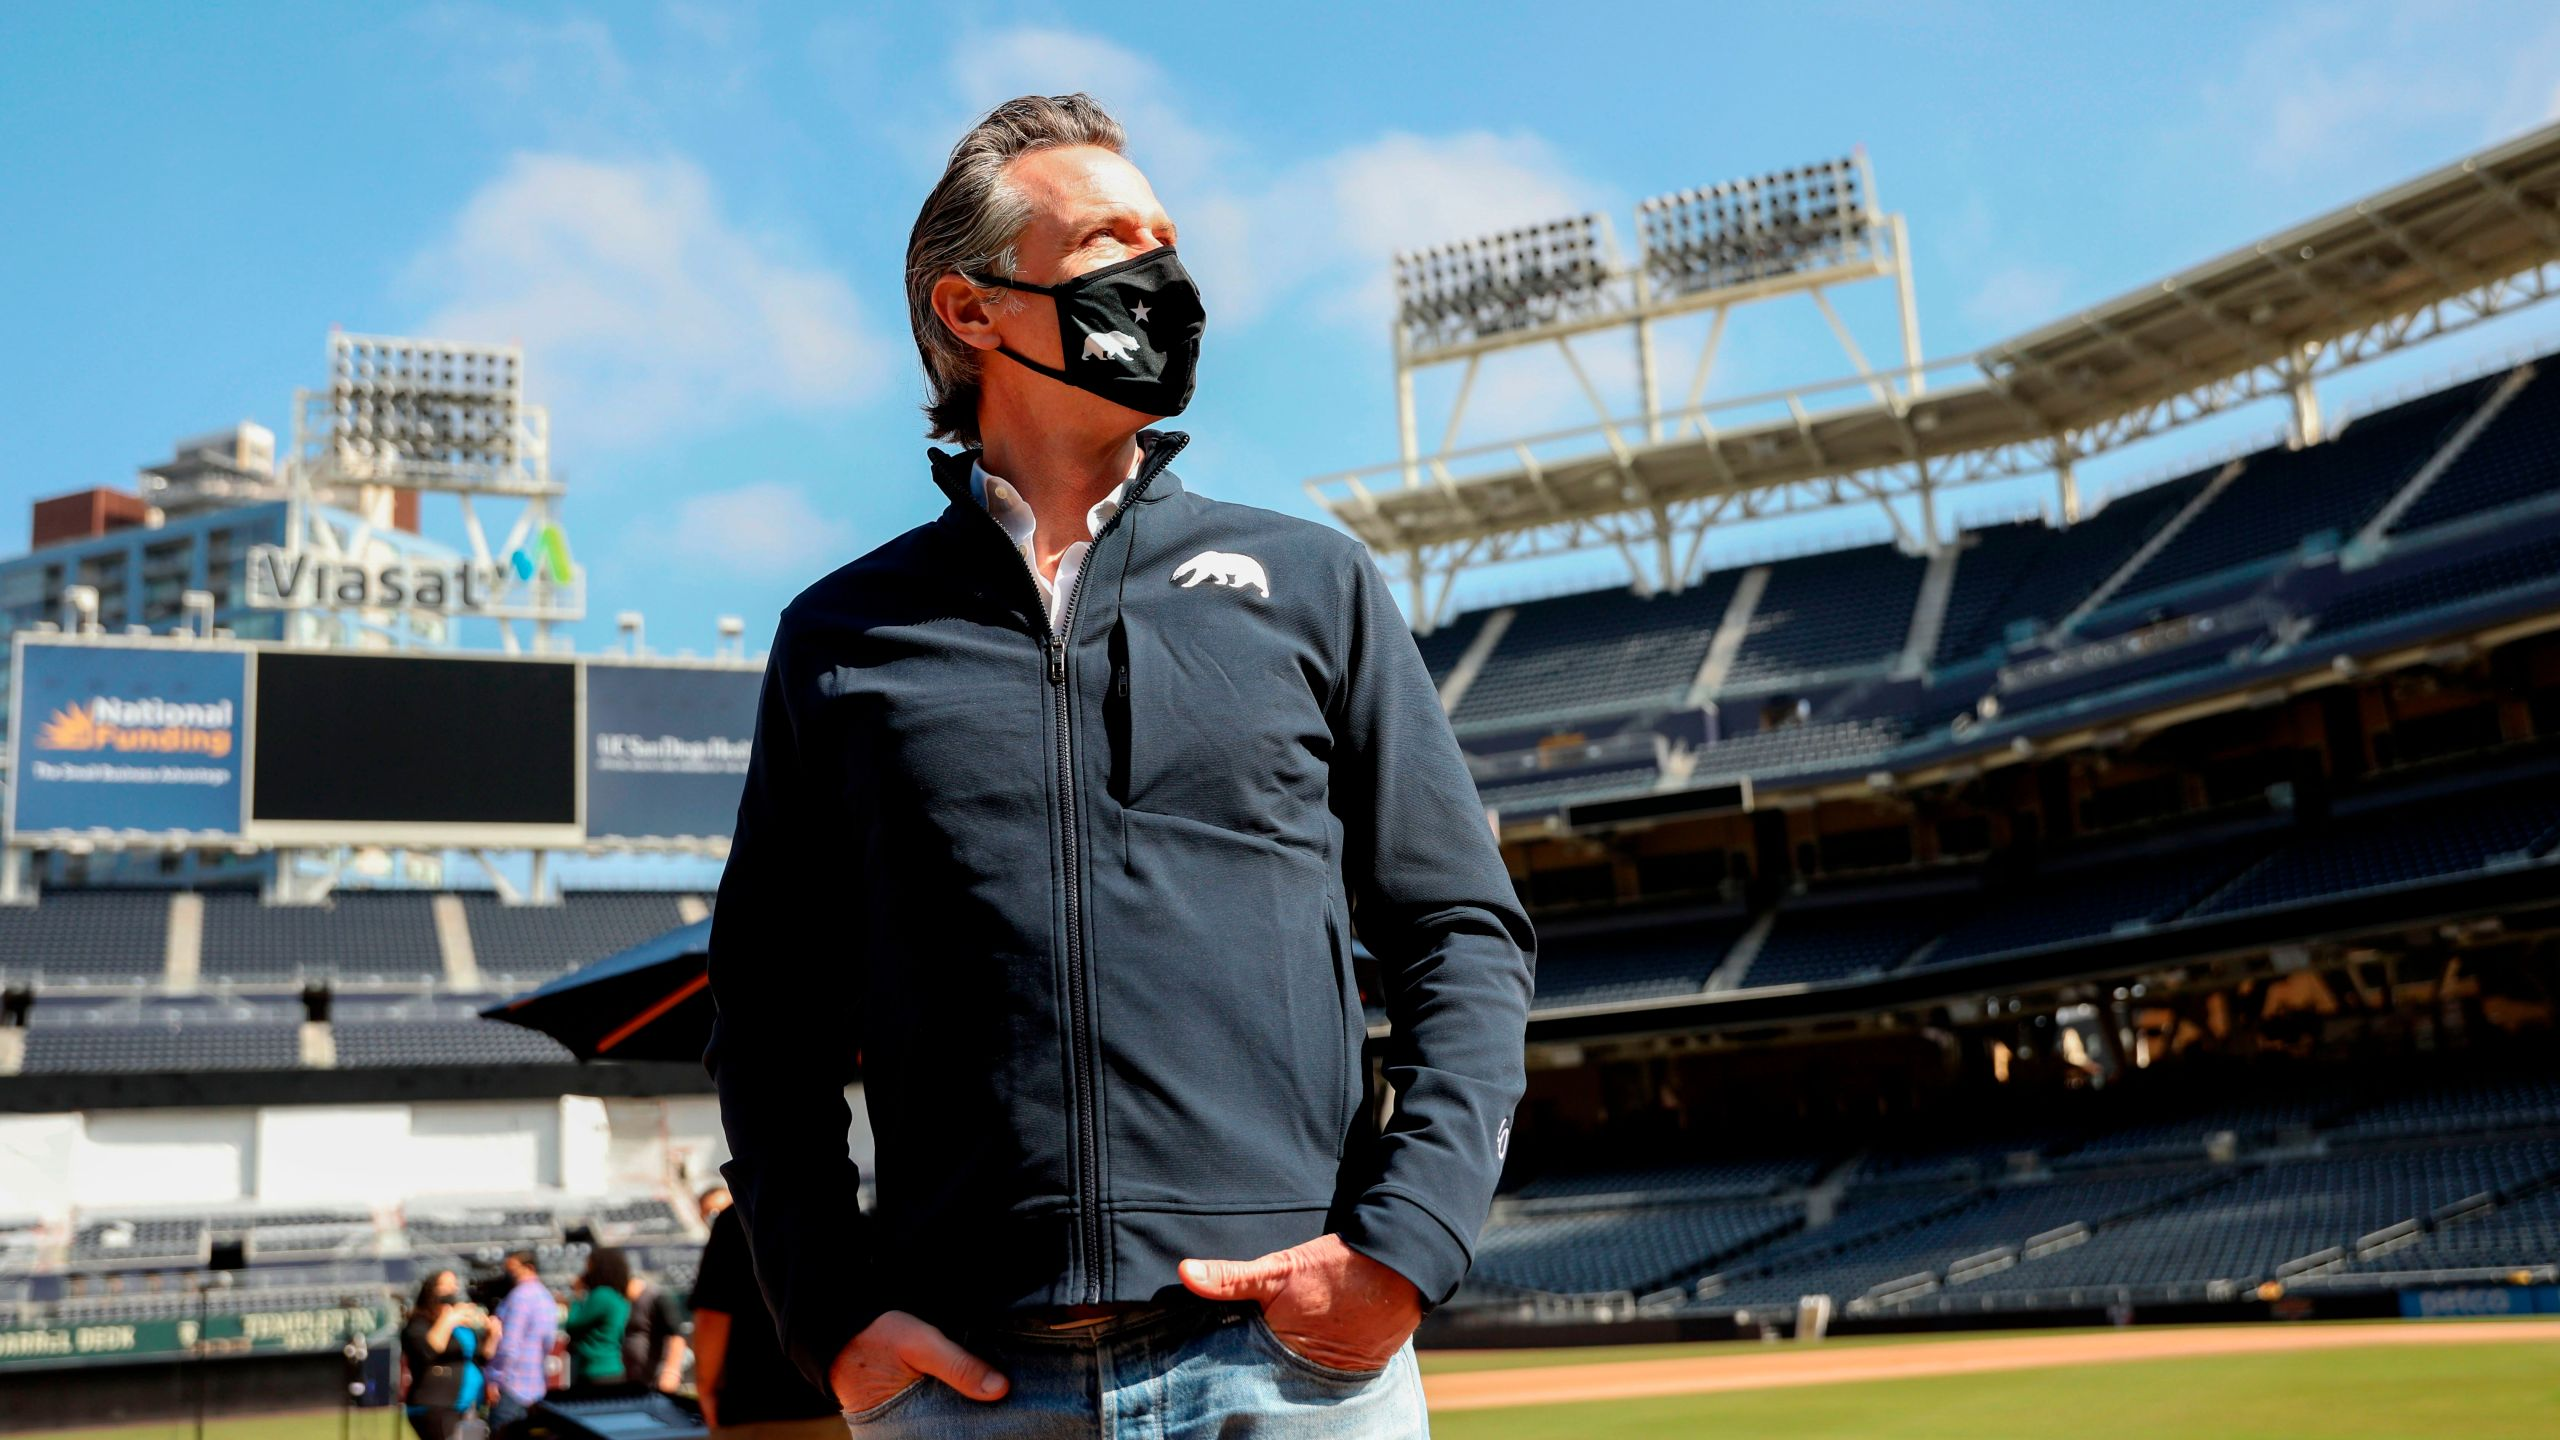 California Gov. Gavin Newsom looks on before speaking to members of the media during a press conference at Petco Park, February 8, 2021 in San Diego. (SANDY HUFFAKER/POOL/AFP via Getty Images)